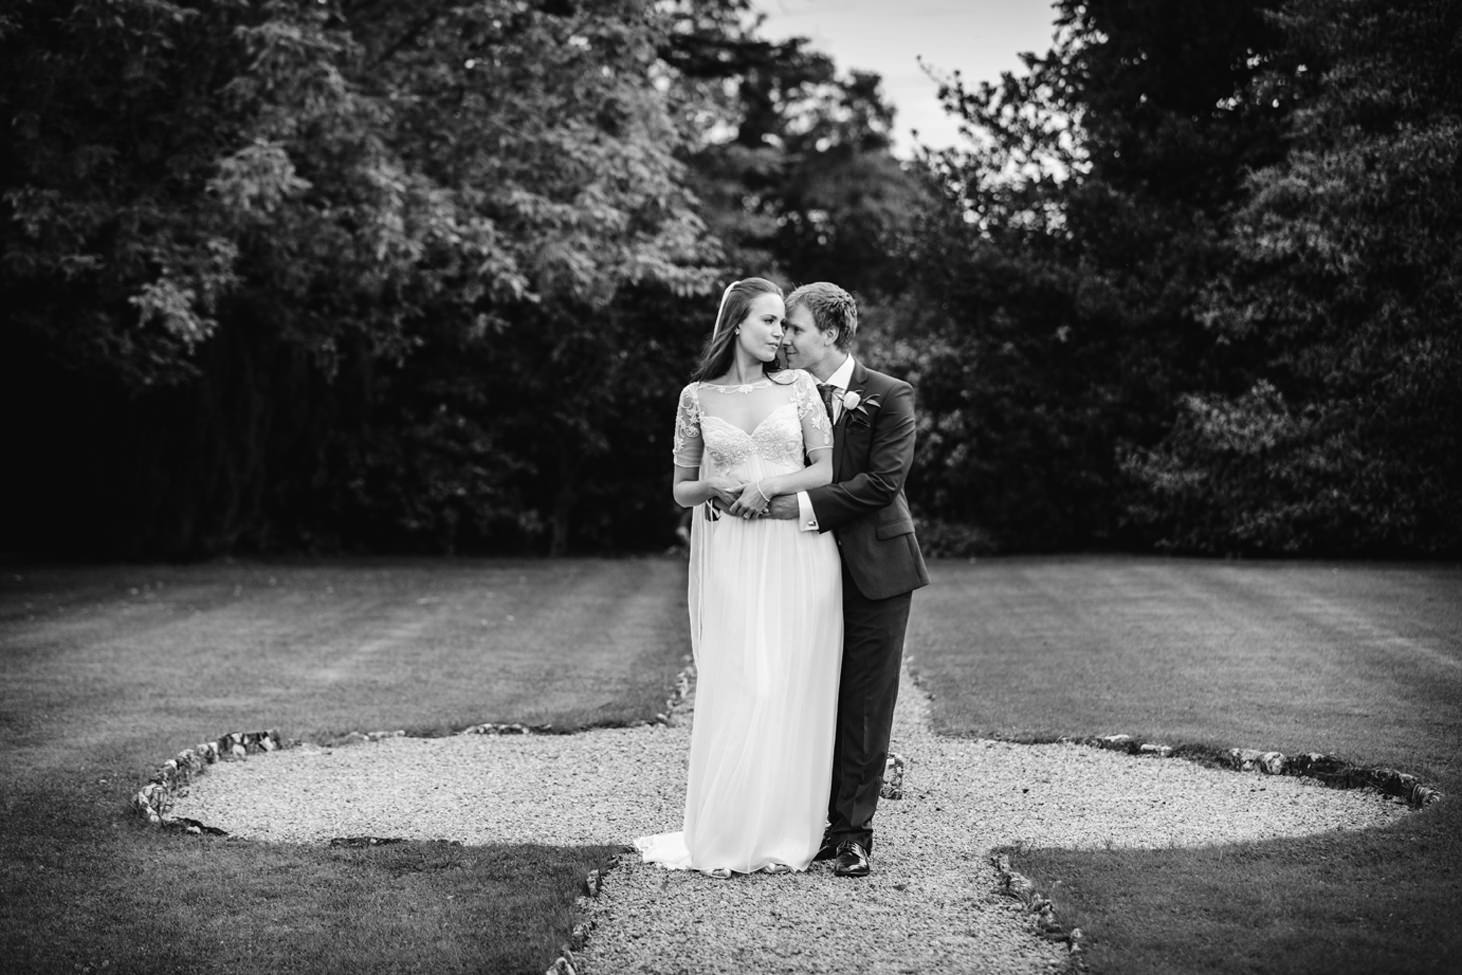 caswell house wedding photography romantic portrait